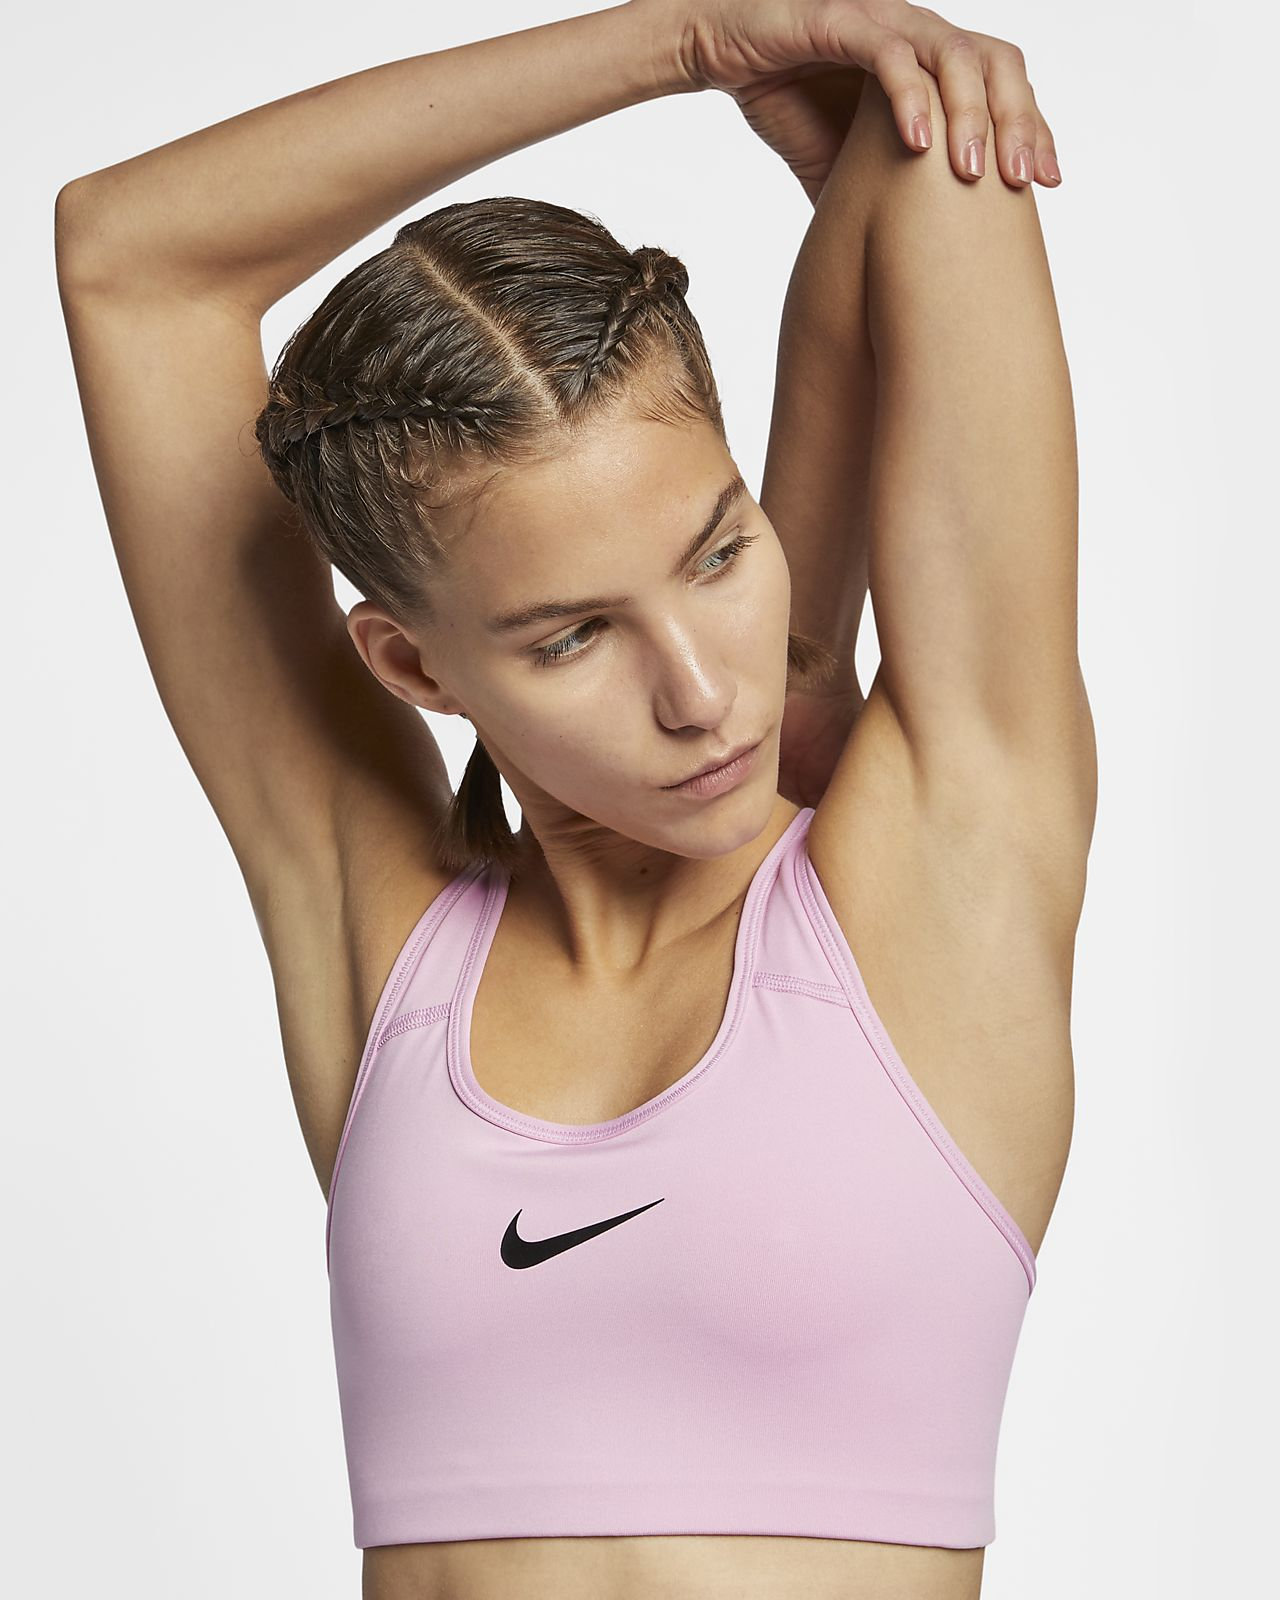 952bd70a93ed0 Nike Women s Swoosh Medium-Support Sports Bra. Nike.com AT